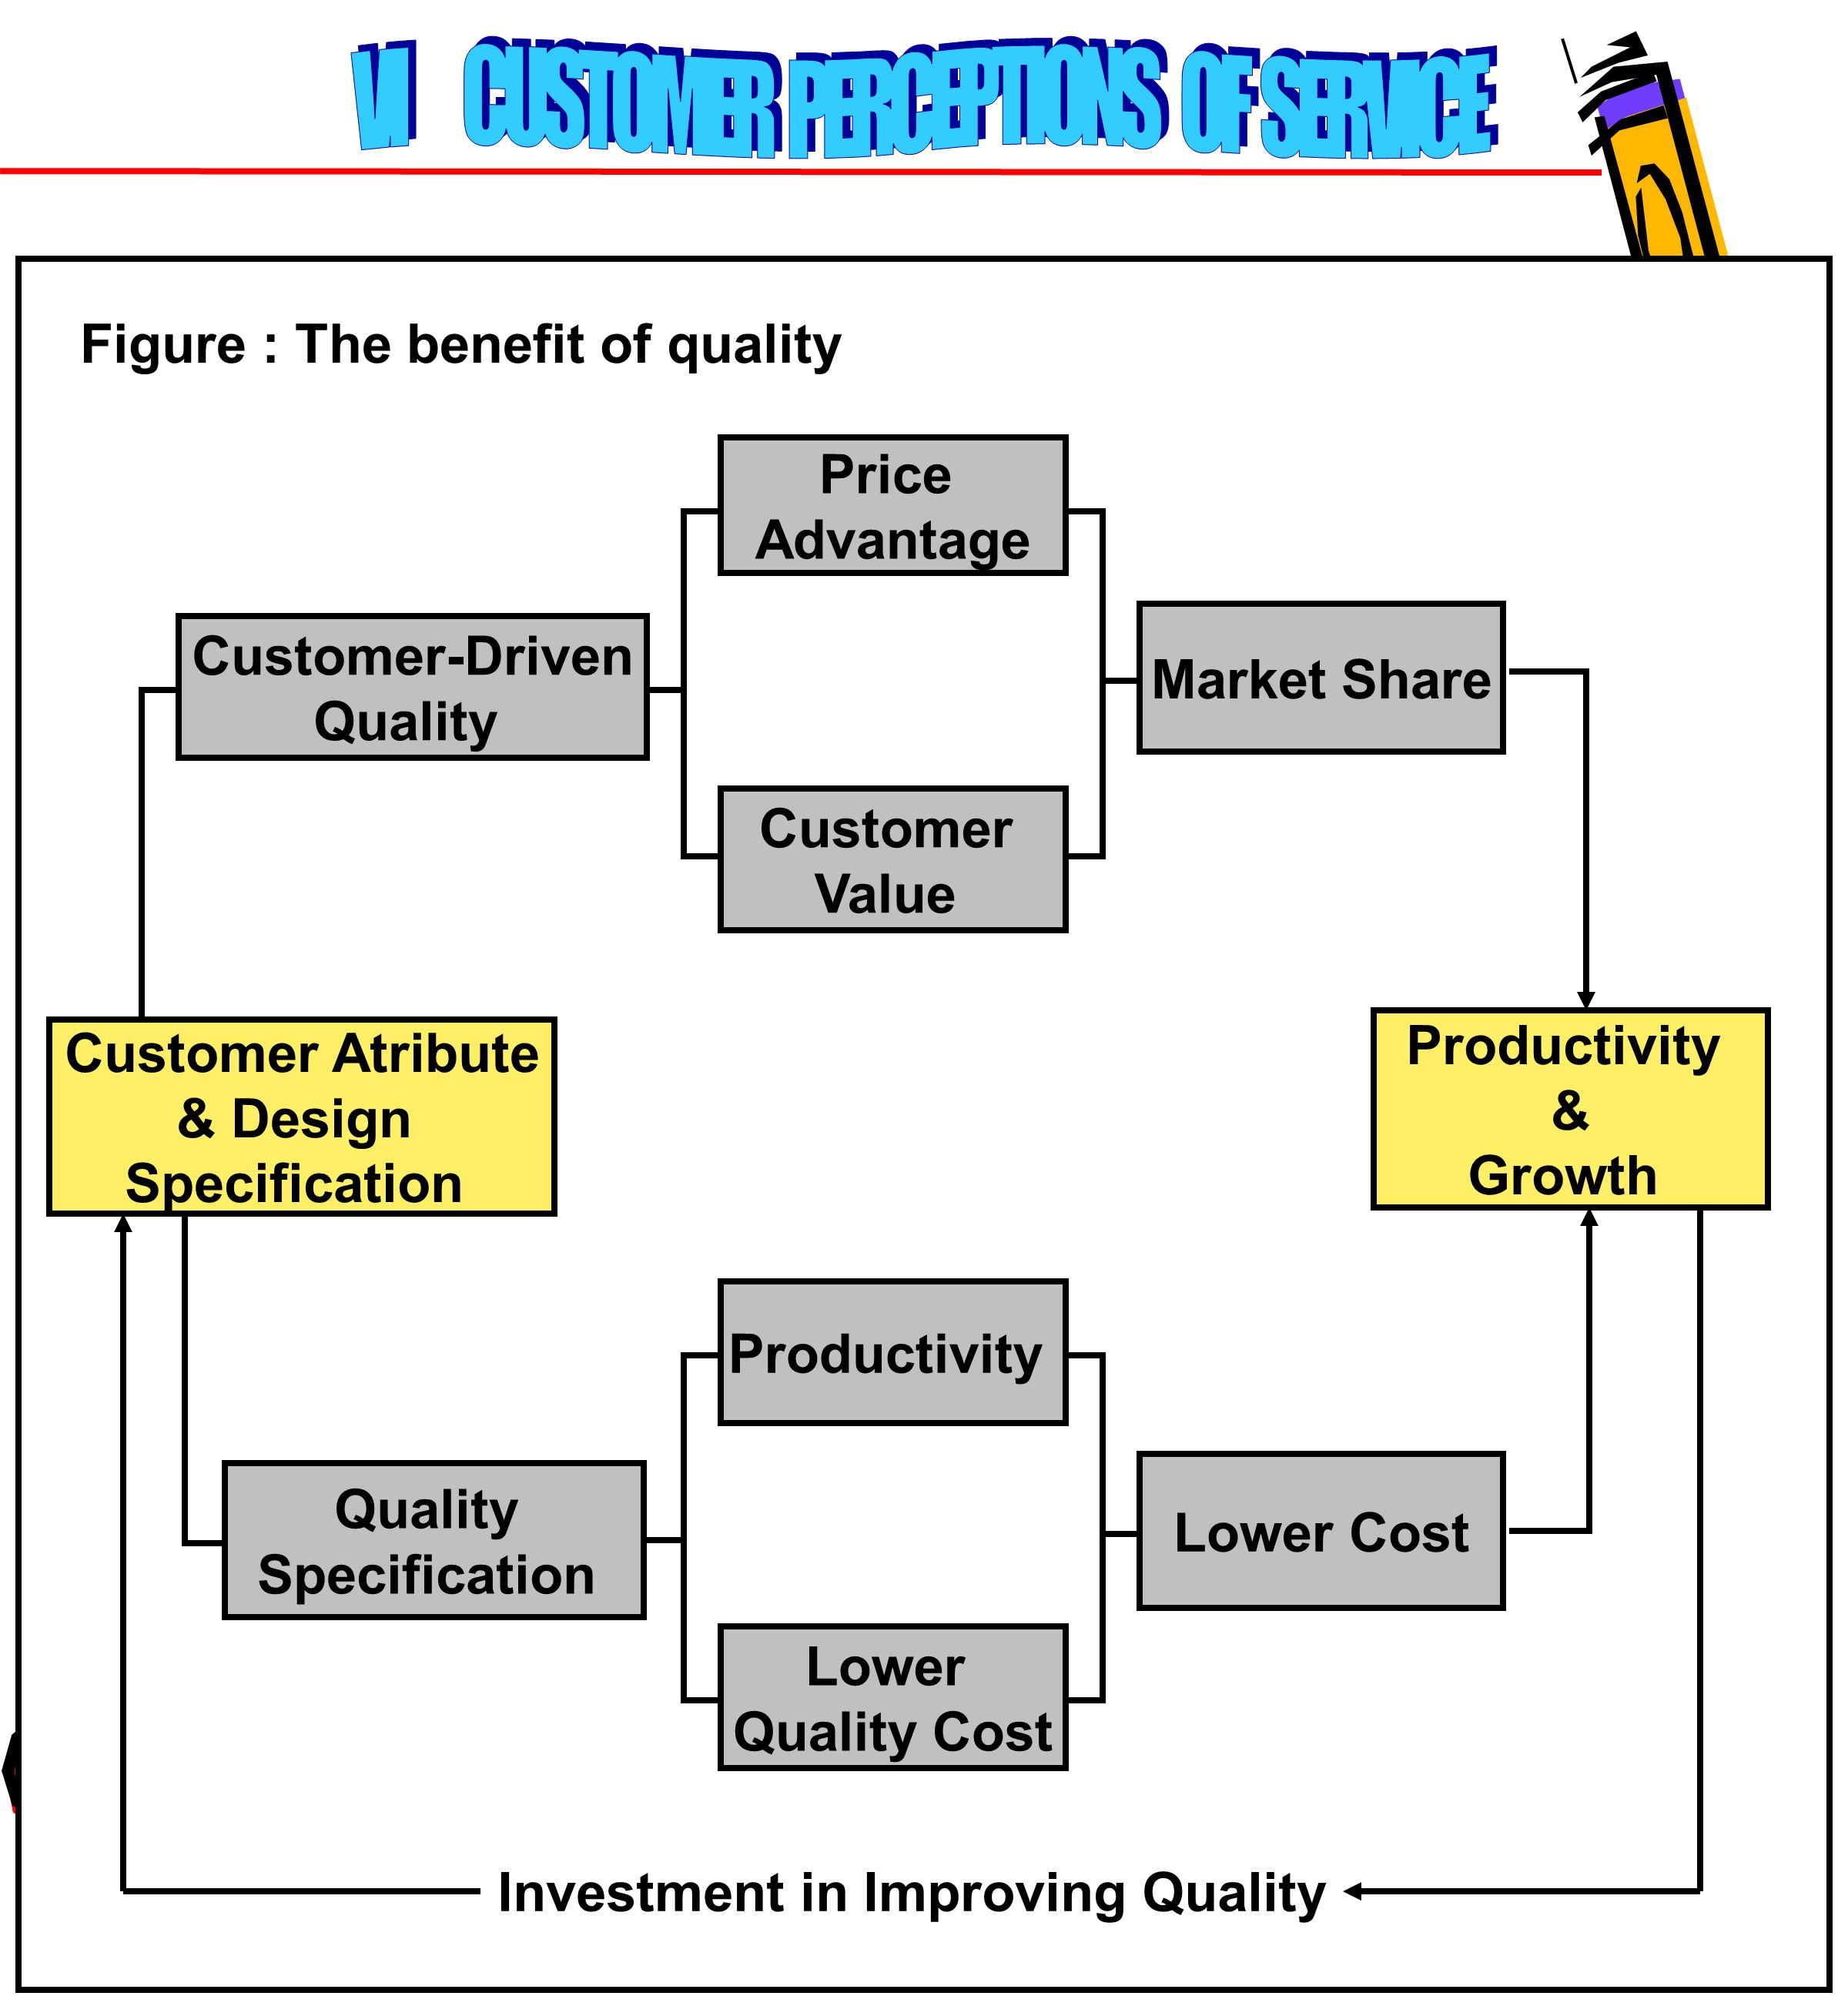 73 Price Advantage Lower Quality Cost Lower Cost Quality Specification Productivity Customer Value Market Share Customer-Driven Quality Productivity &